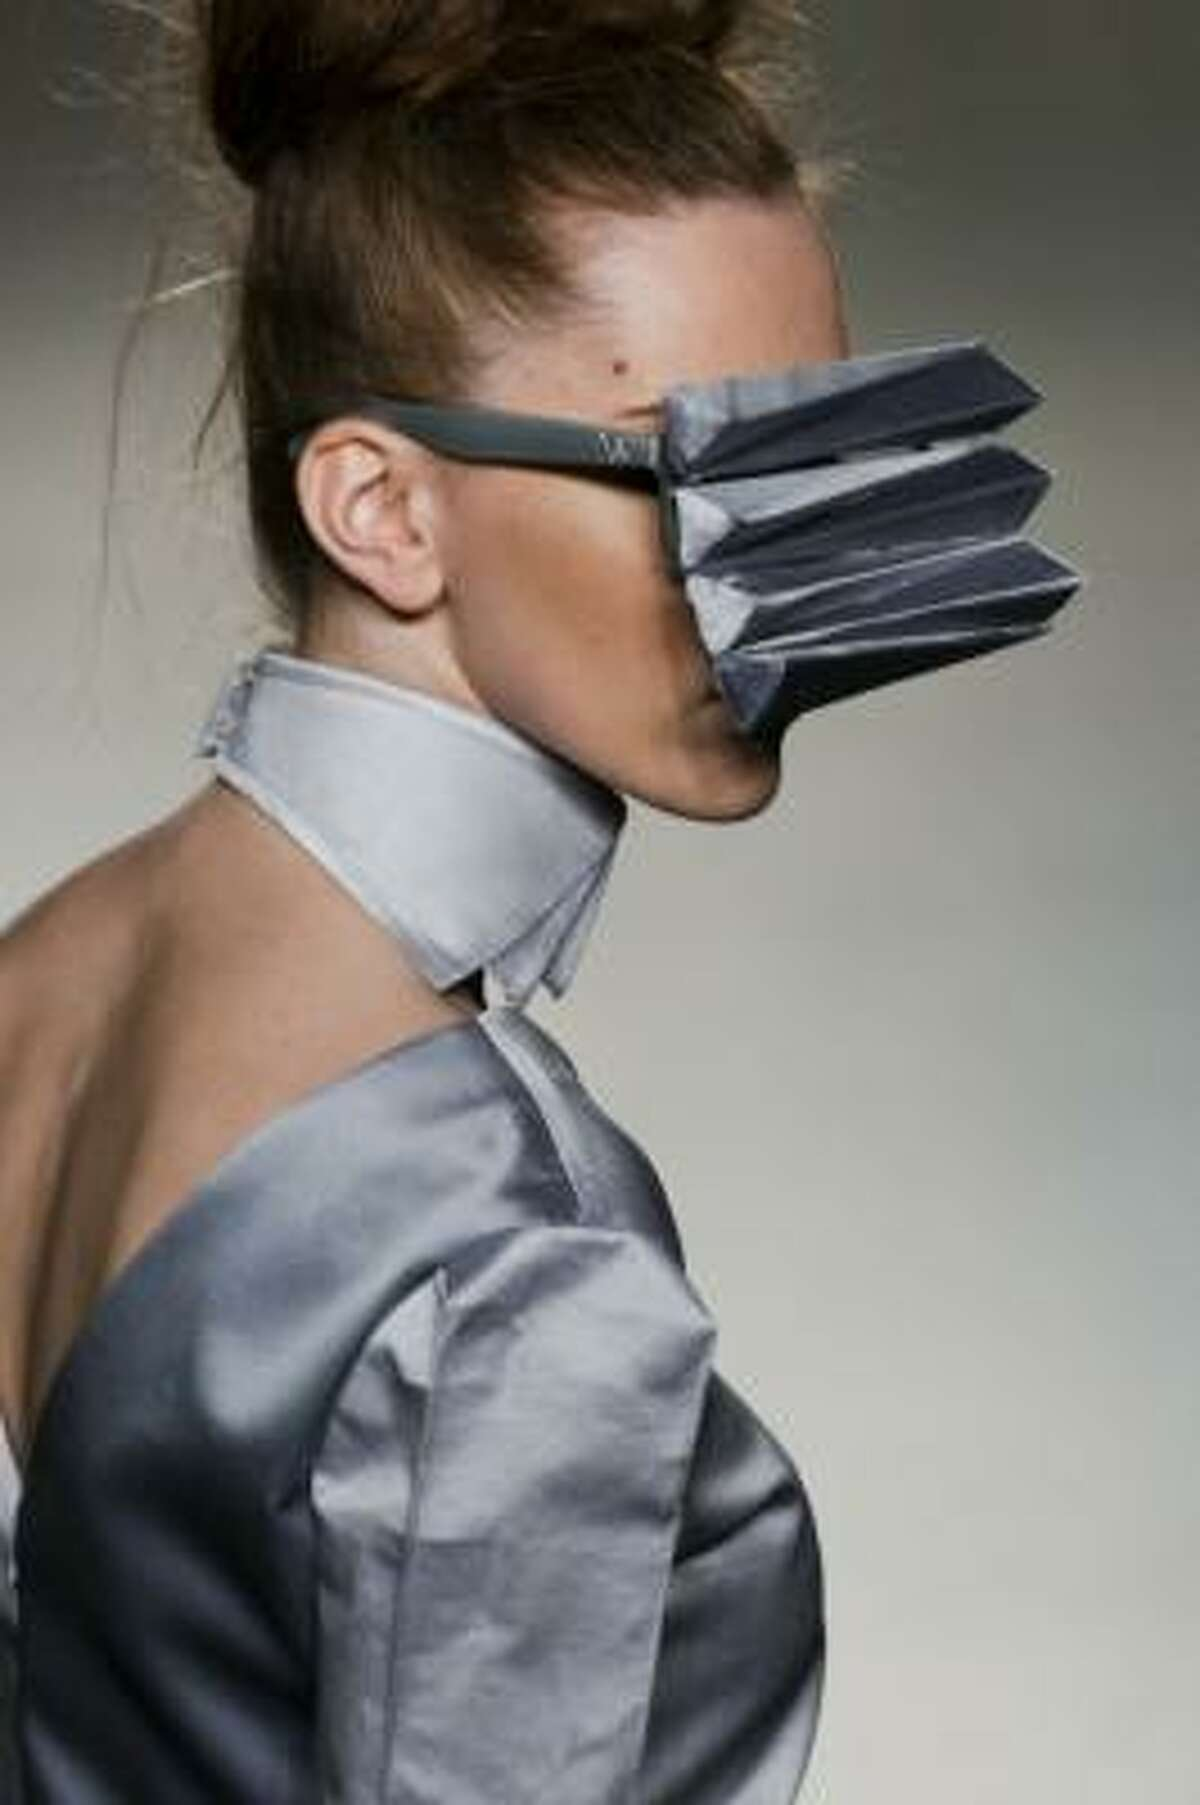 High fashion and impaired vision.